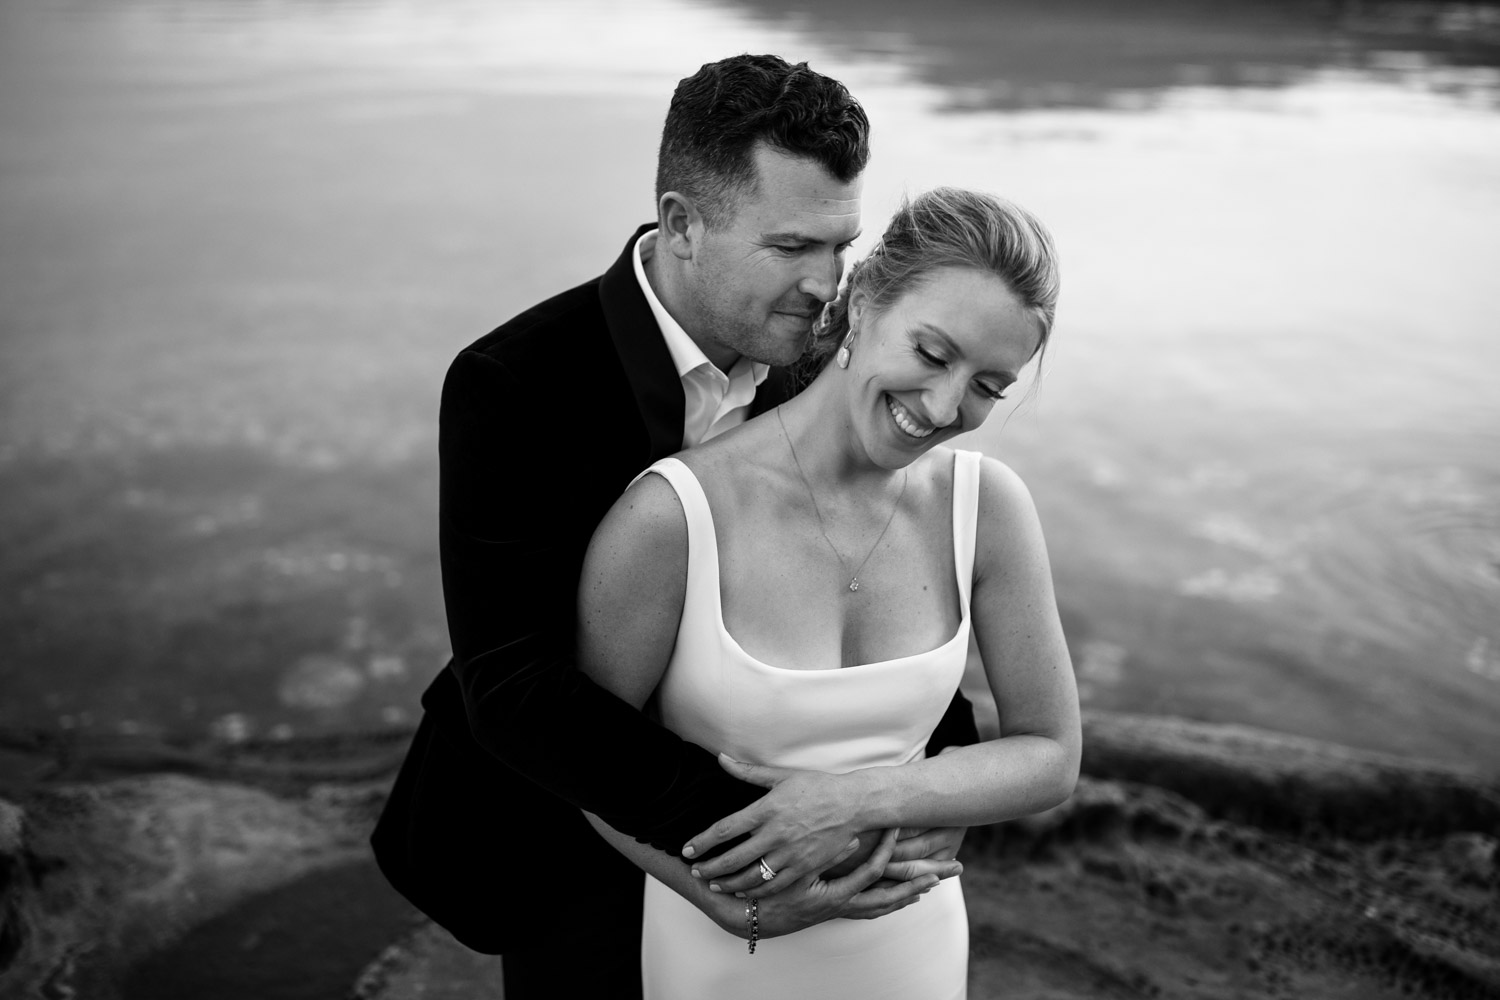 Photojournalistic Vancouver Island Wedding Photographer based in Victoria